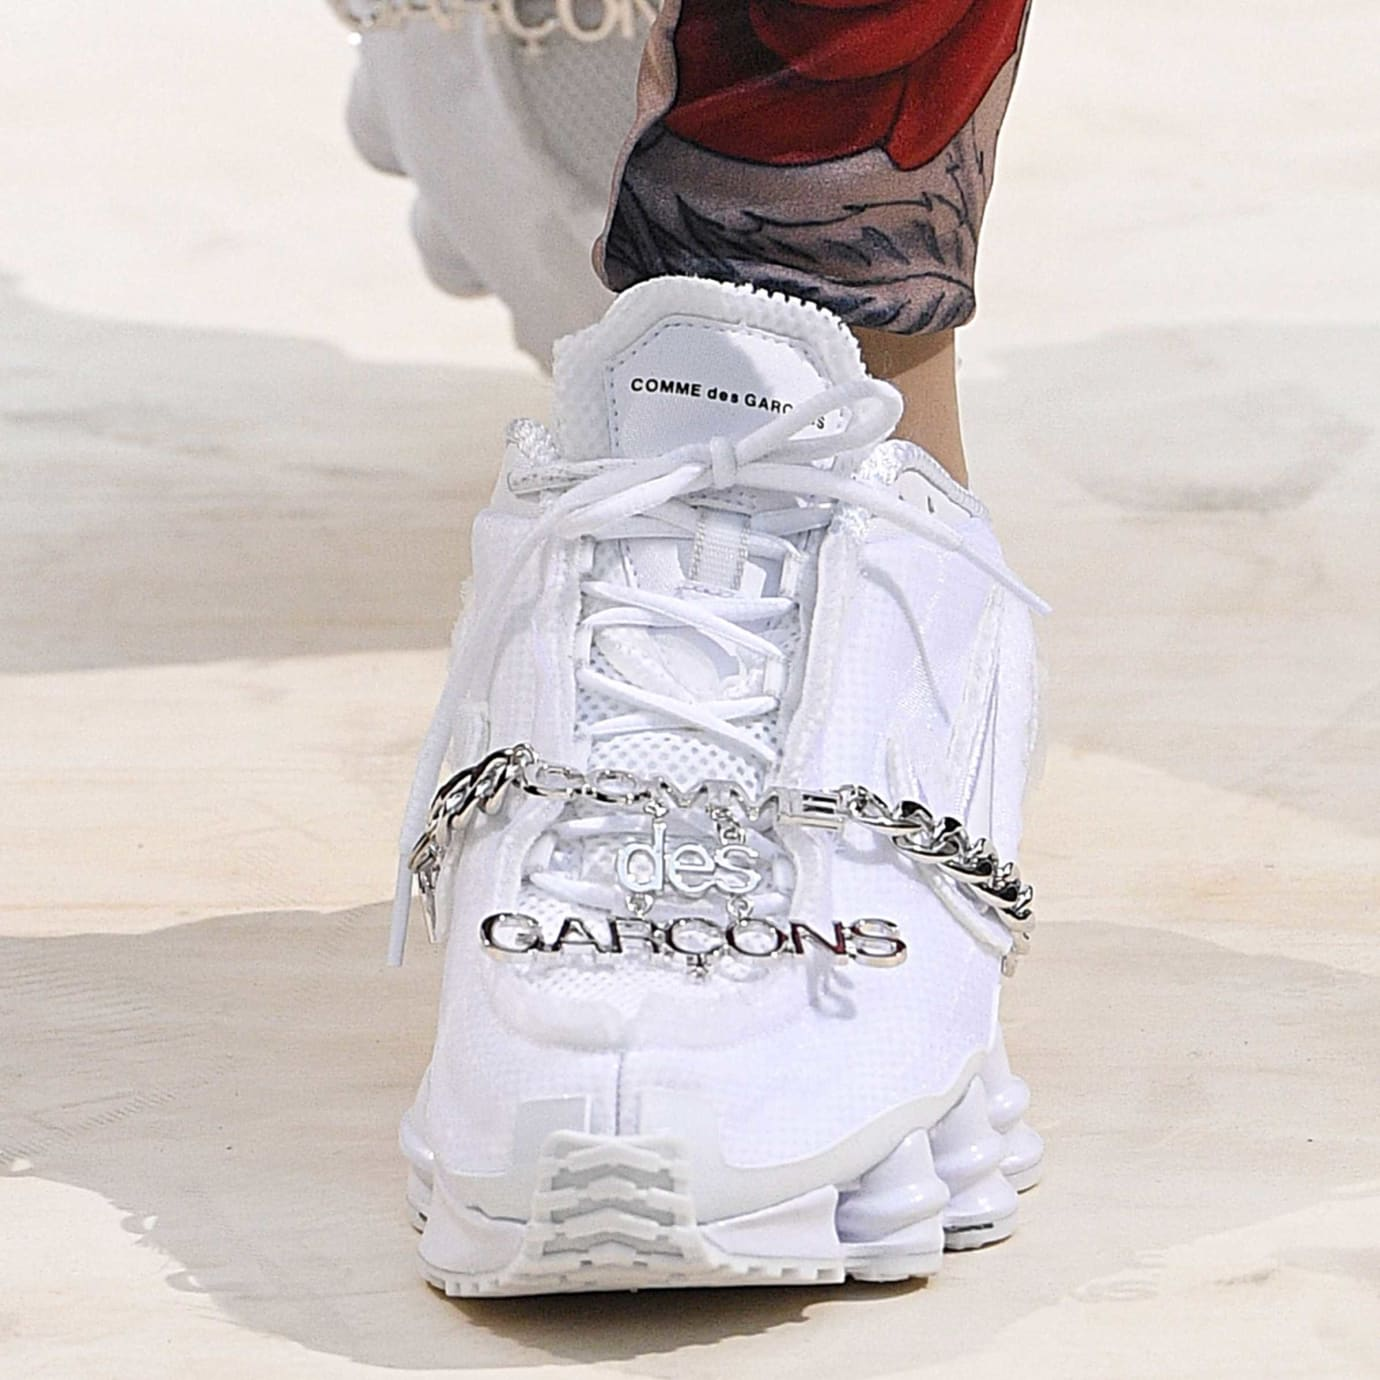 9a4655ae Comme des Garcons x Nike Shox Release Date | Sole Collector